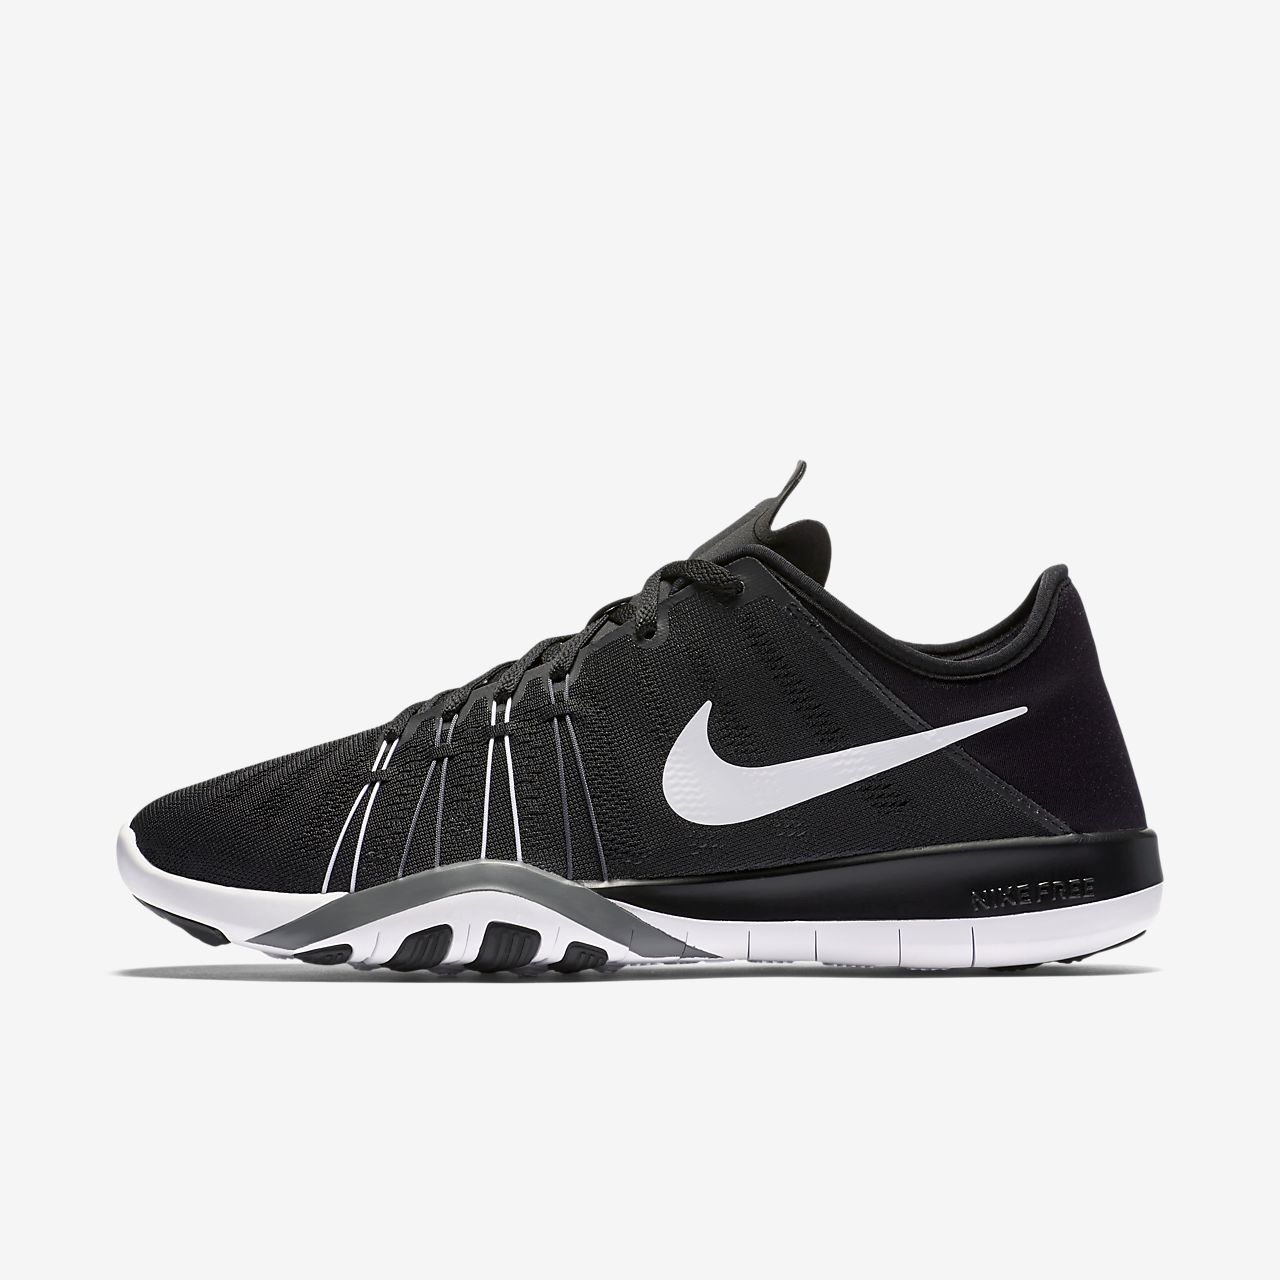 photos discount footlocker Nike Free Tr 6 Instagram Métallique jeu 100% authentique exclusif Pré-commander visite libre d'expédition DRF5WdT